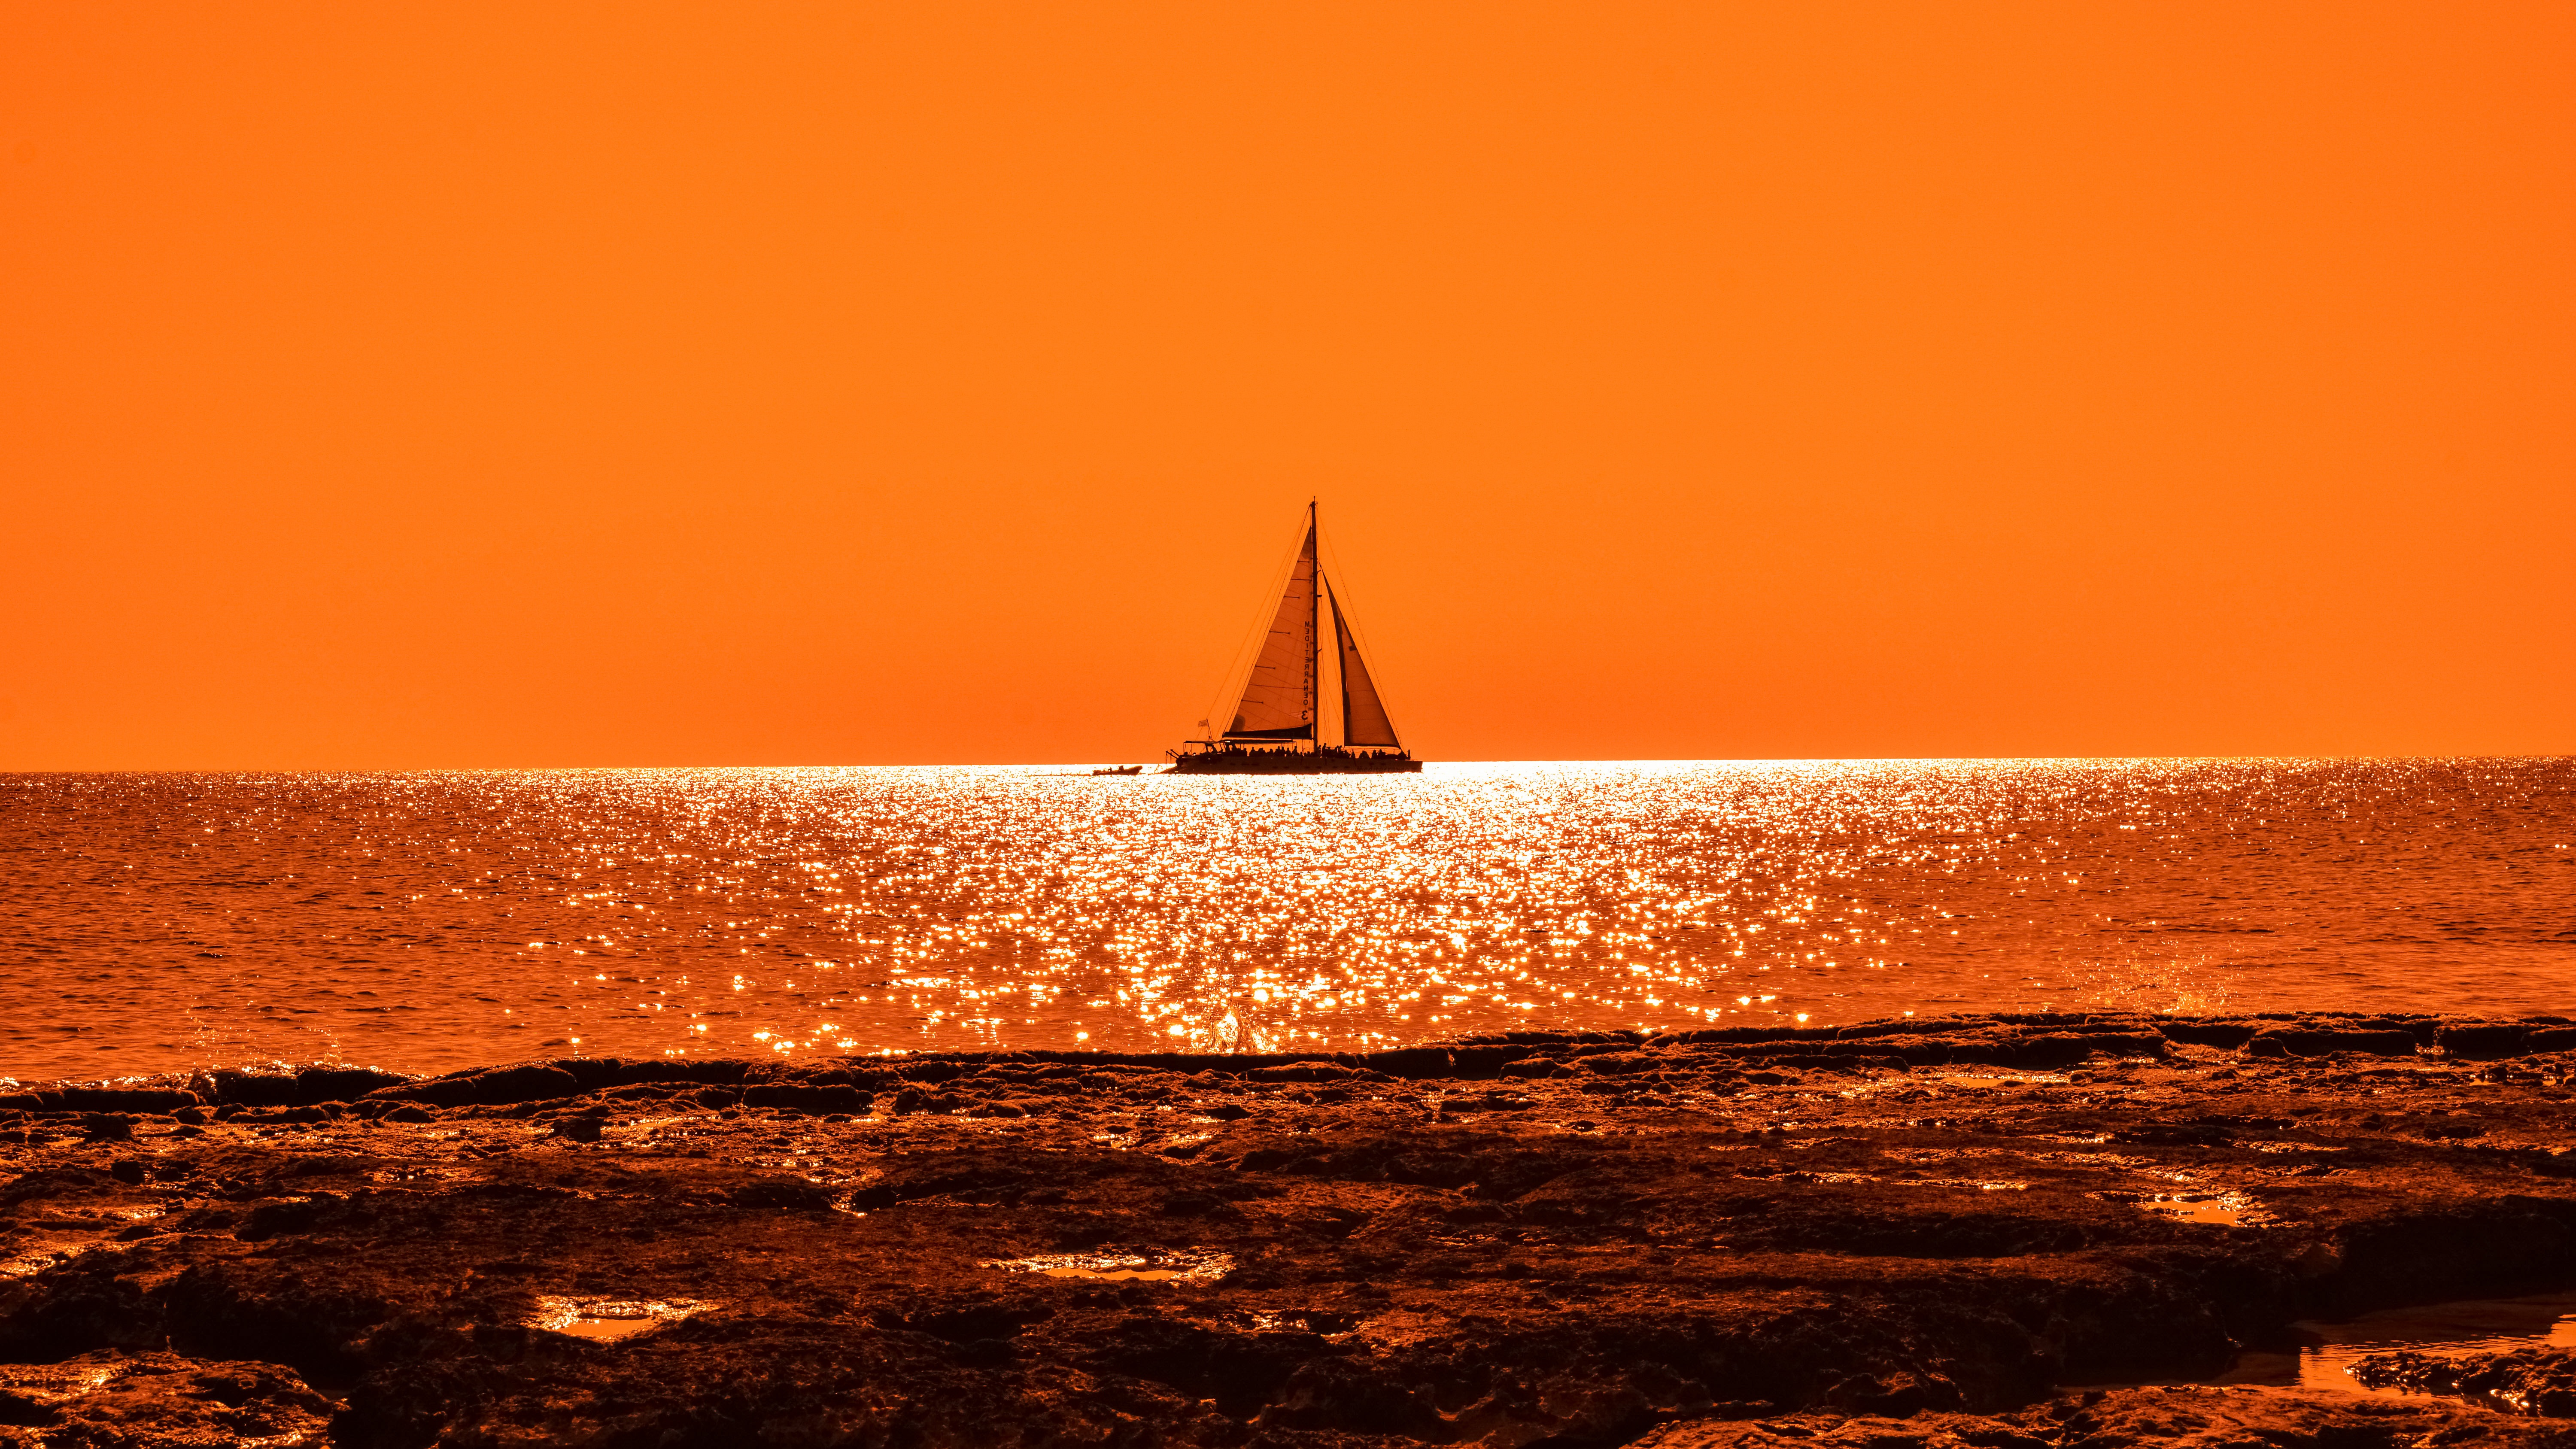 Sunset Boat Sail 4K Wallpapers